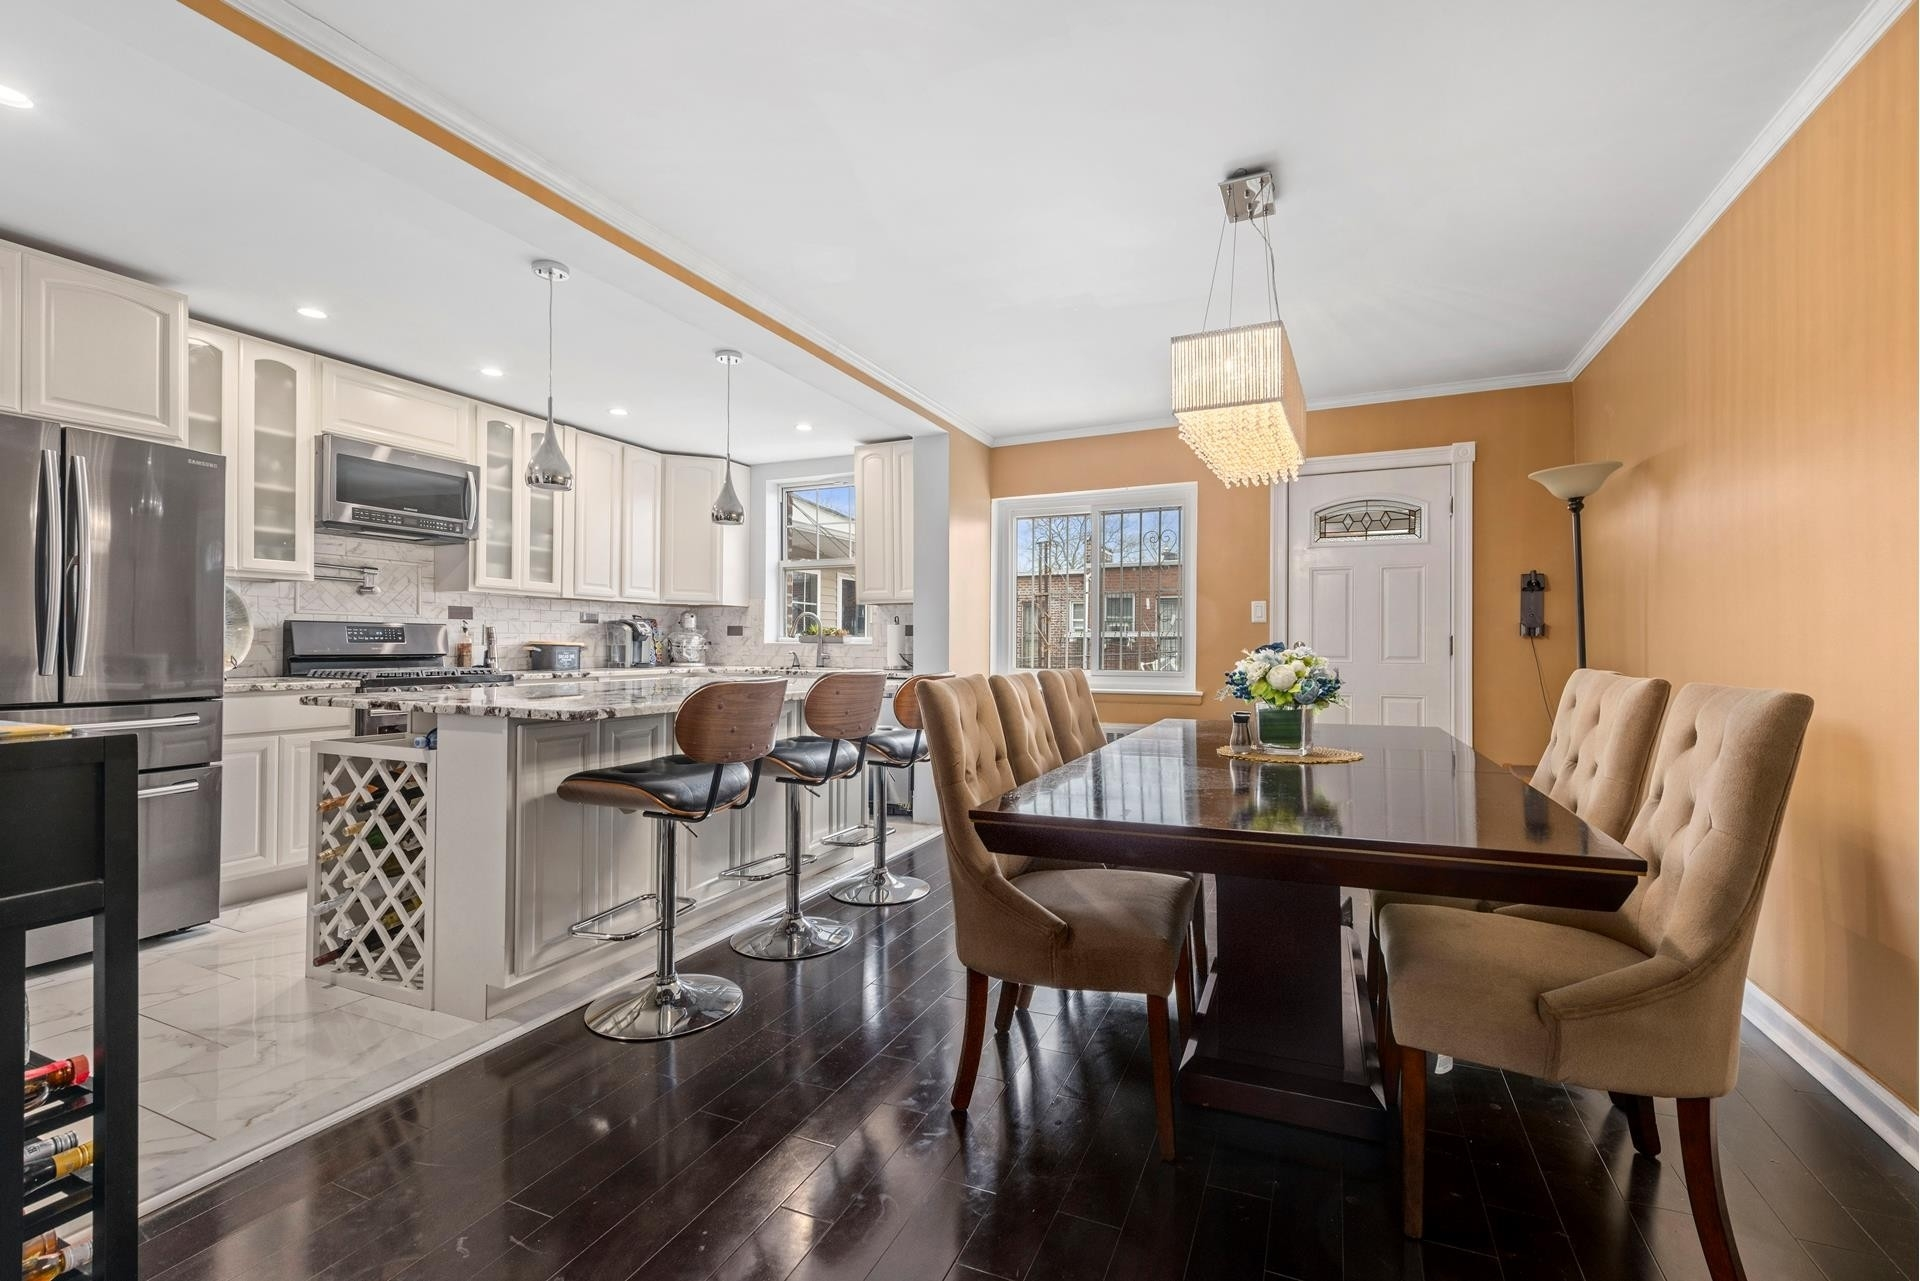 Property at East Flatbush, Brooklyn, NY 11234